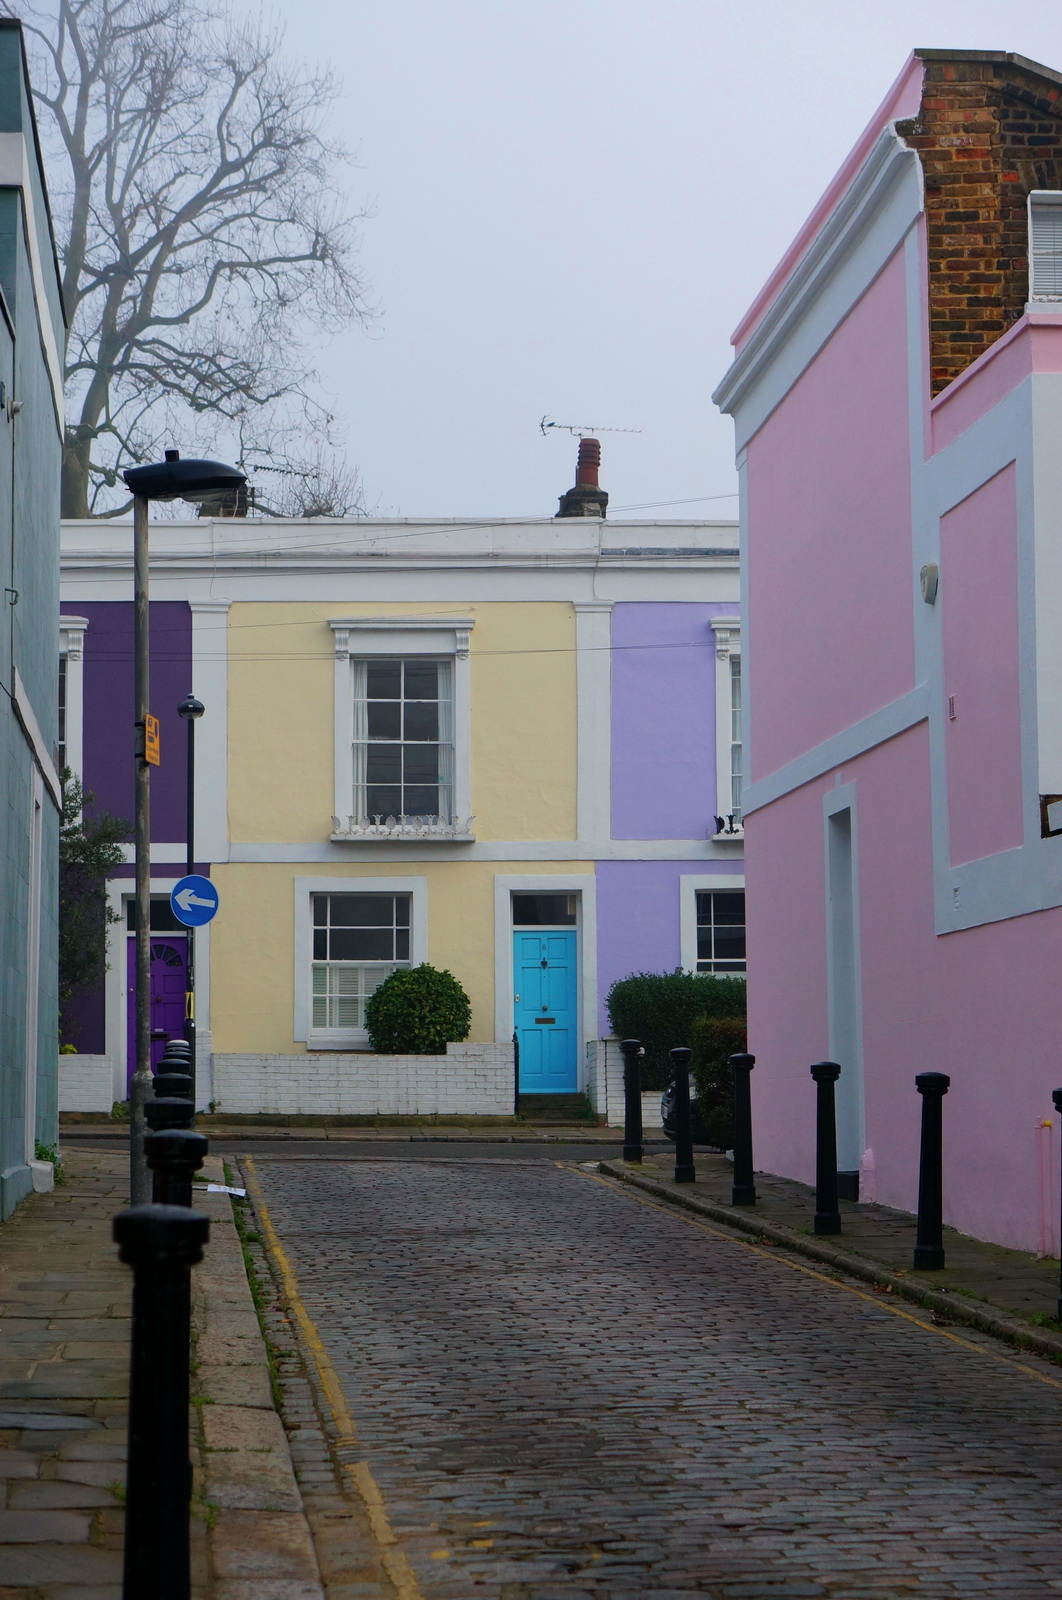 londres, london, leverton street, couleurs pastel londres, pastel colours londres, streetlife, citylife